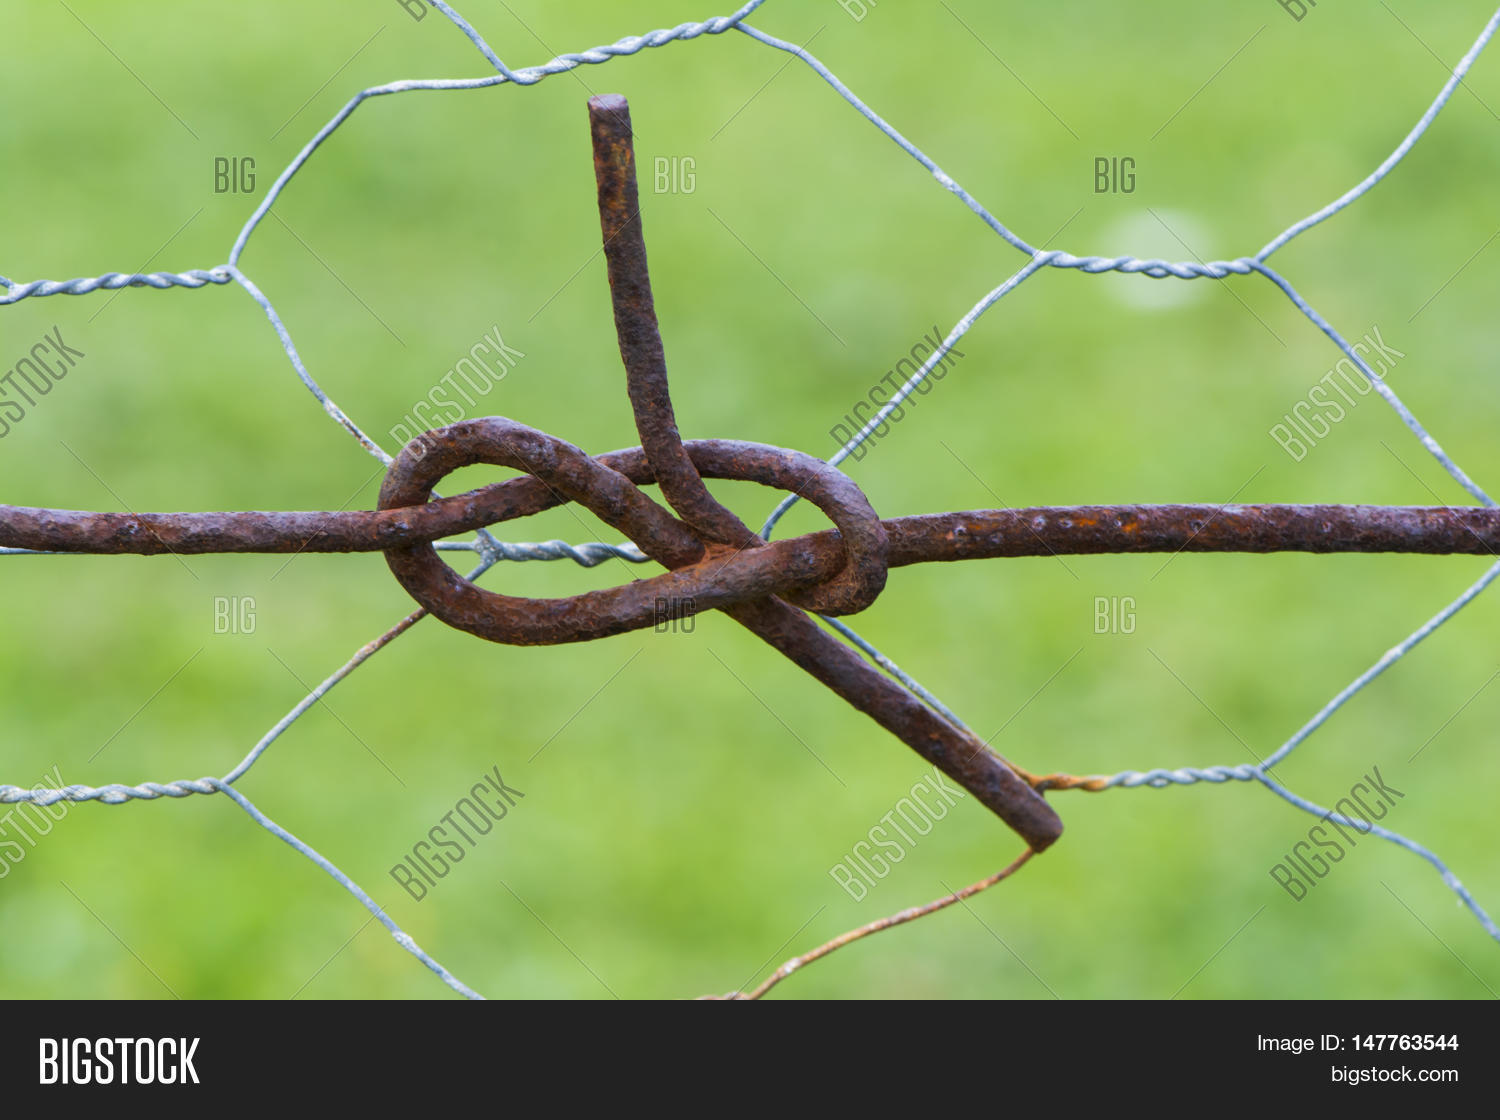 Abstract: Fence Wire Image & Photo (Free Trial) | Bigstock